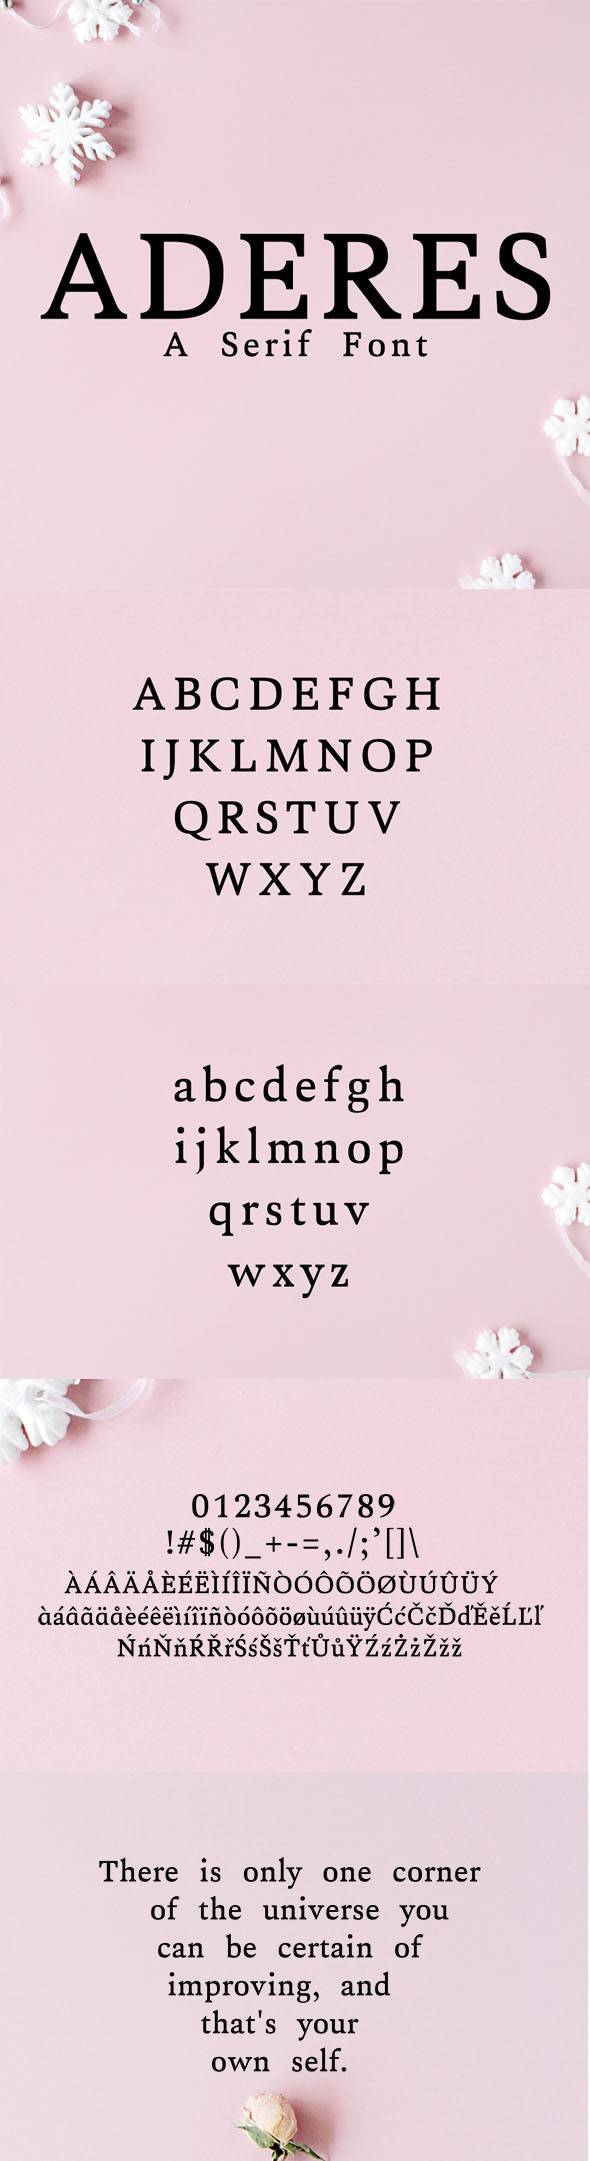 Aderes Serif Font Family - Serif Fonts